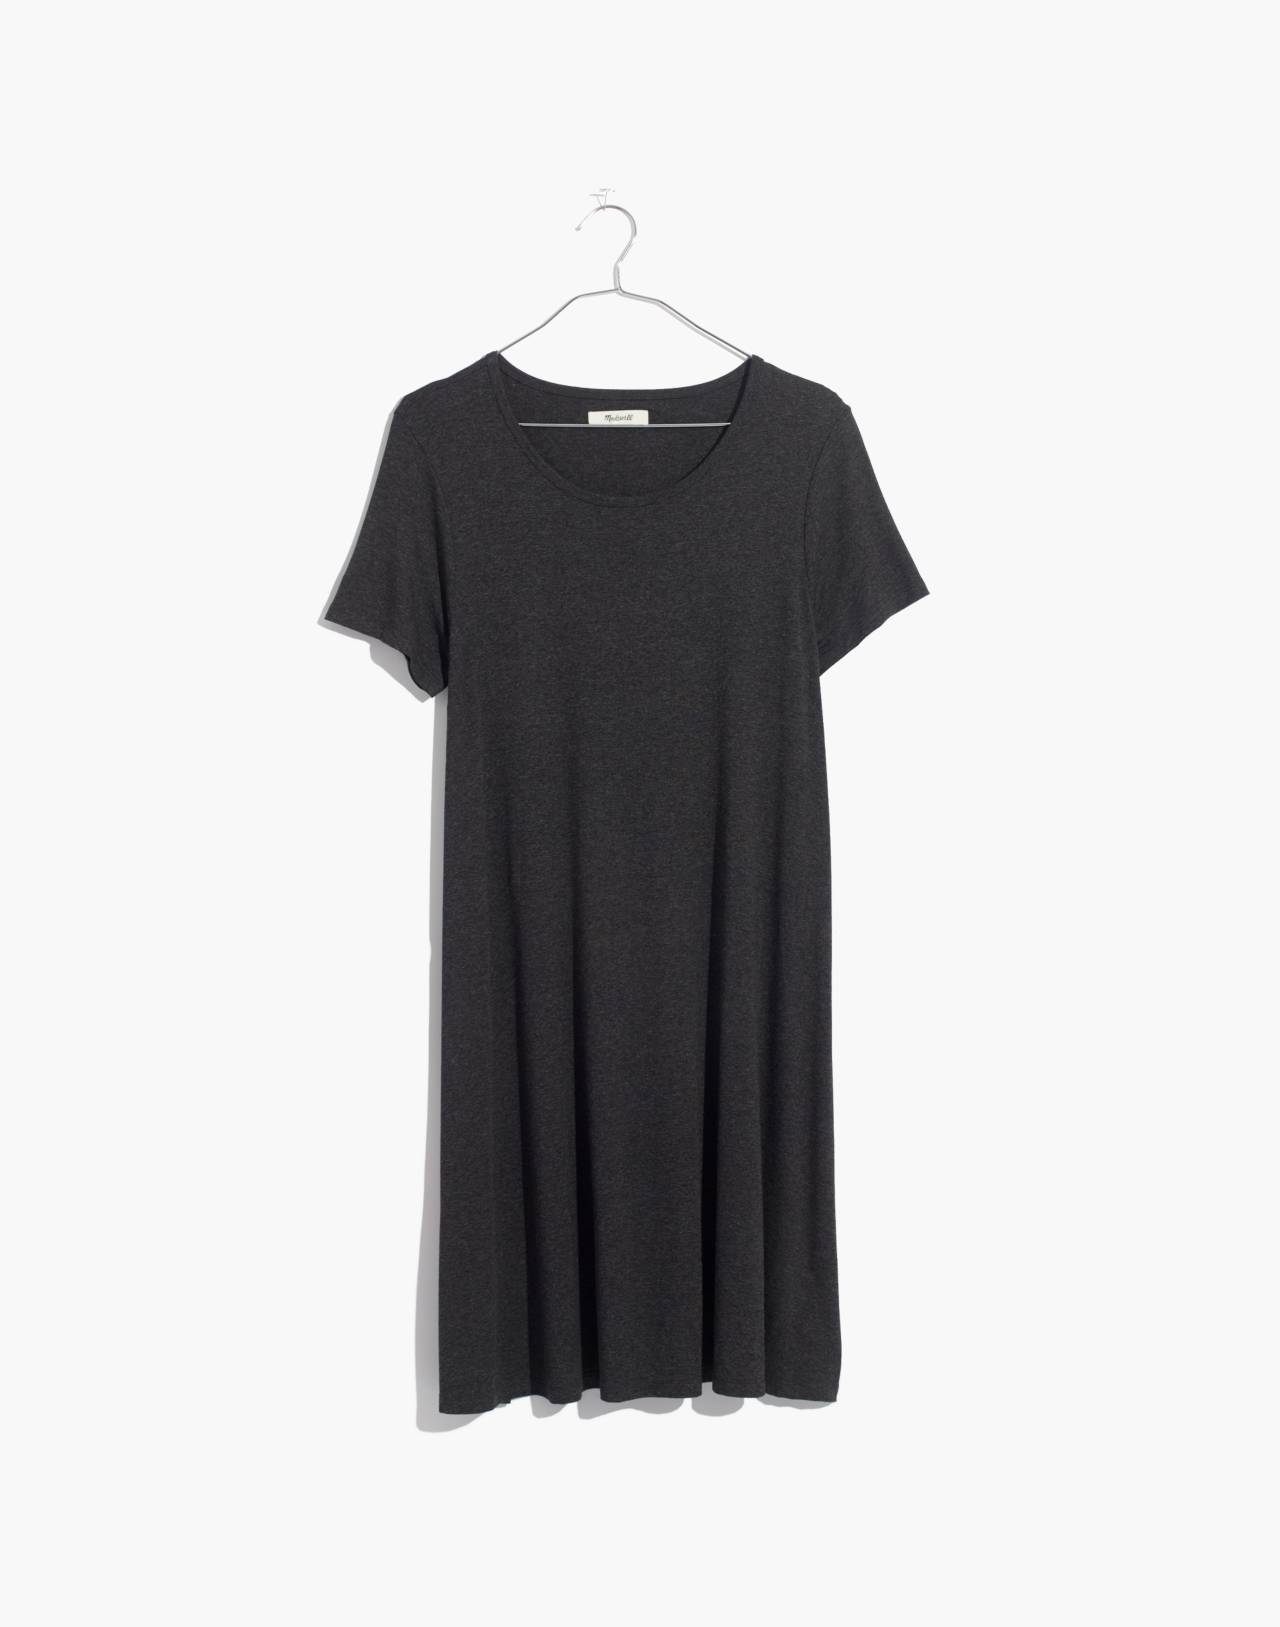 Swingy Tee Dress in hthr charcoal image 4